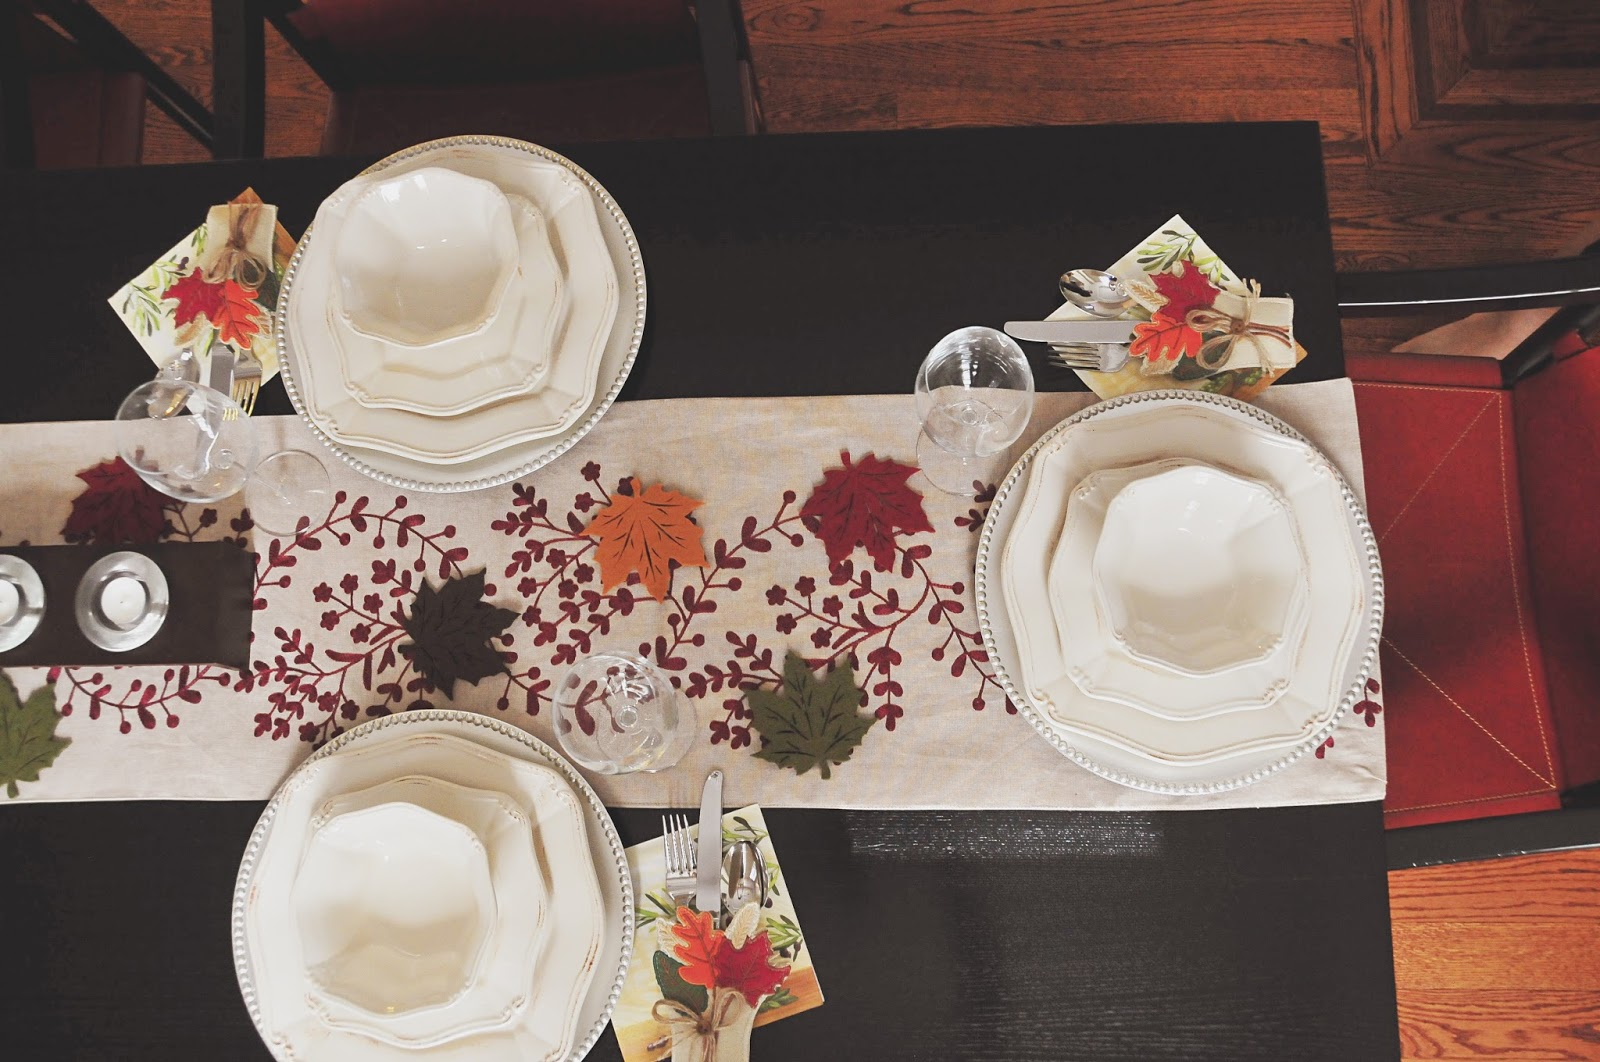 Thanksgiving Inspiration: Turkey Day Decor and Table Settings | Self ...